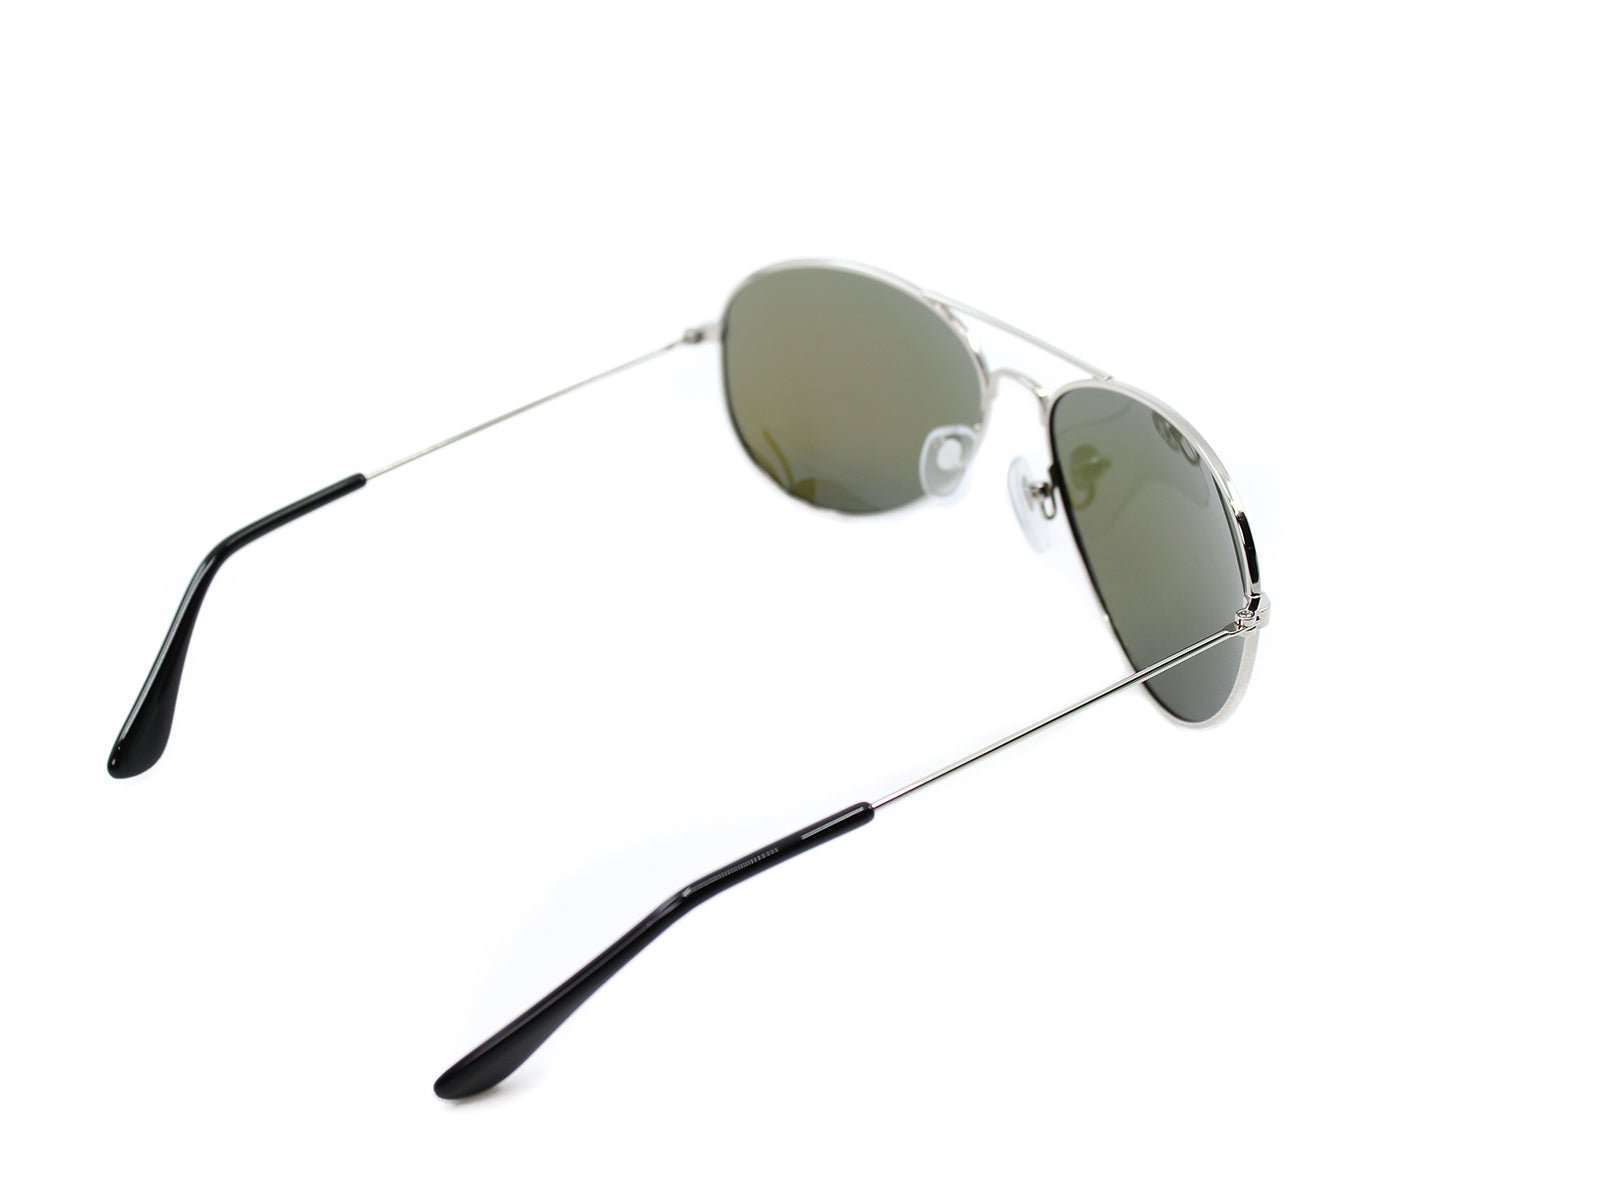 Mavericks - Tides: Silver / Mirrored Blue Polarized